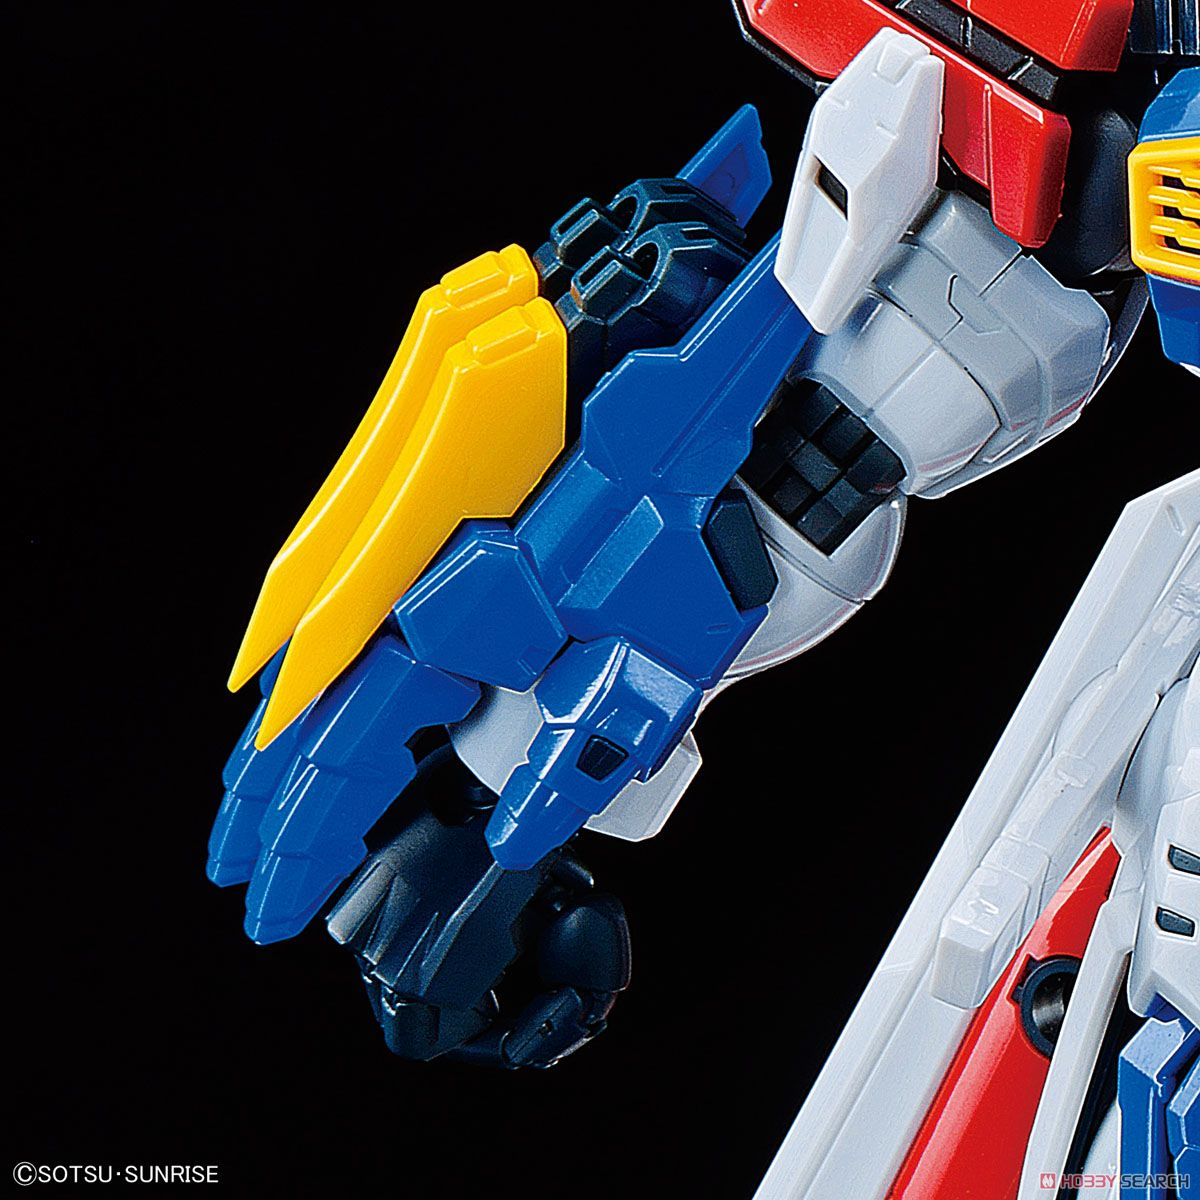 High-Resolution Model God Gundam (1/100) (Gundam Model Kits) Item picture11